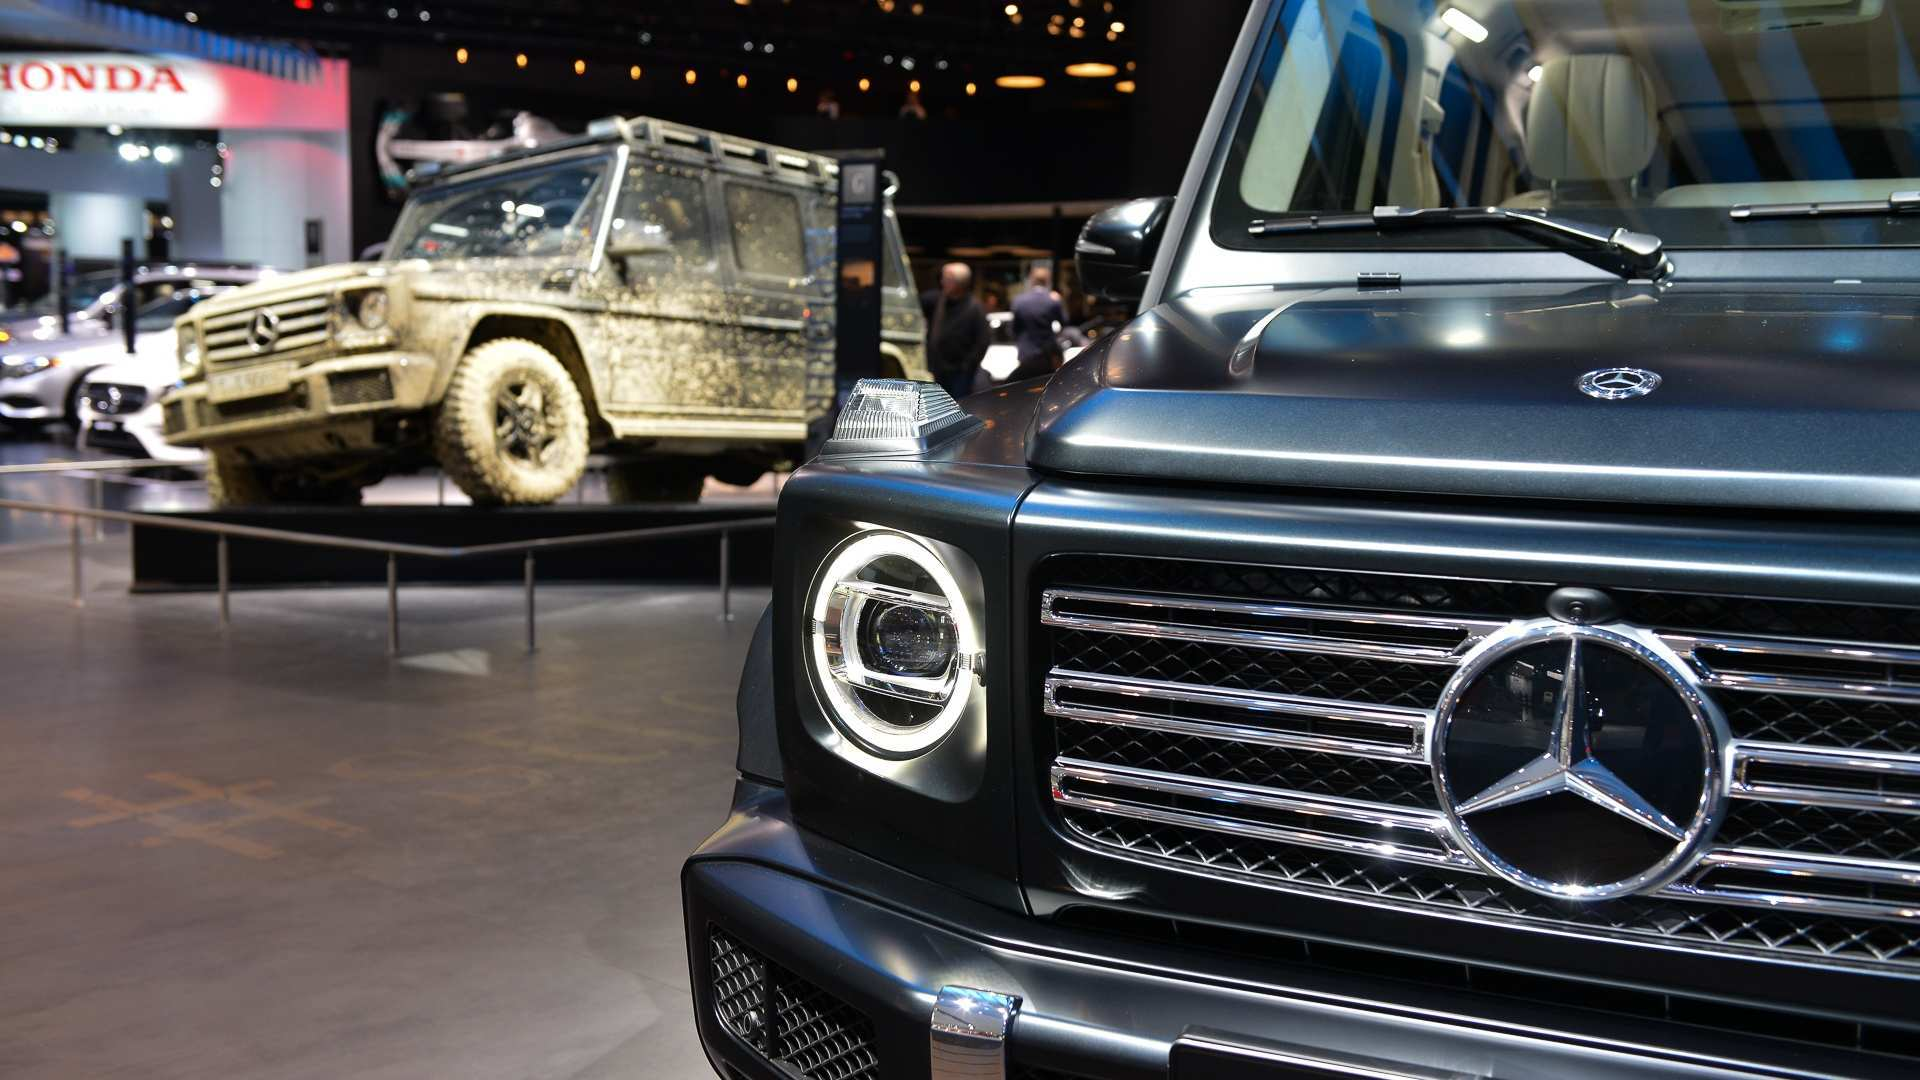 58 Gallery of New Mercedes Detroit Auto Show 2019 Review Prices for New Mercedes Detroit Auto Show 2019 Review